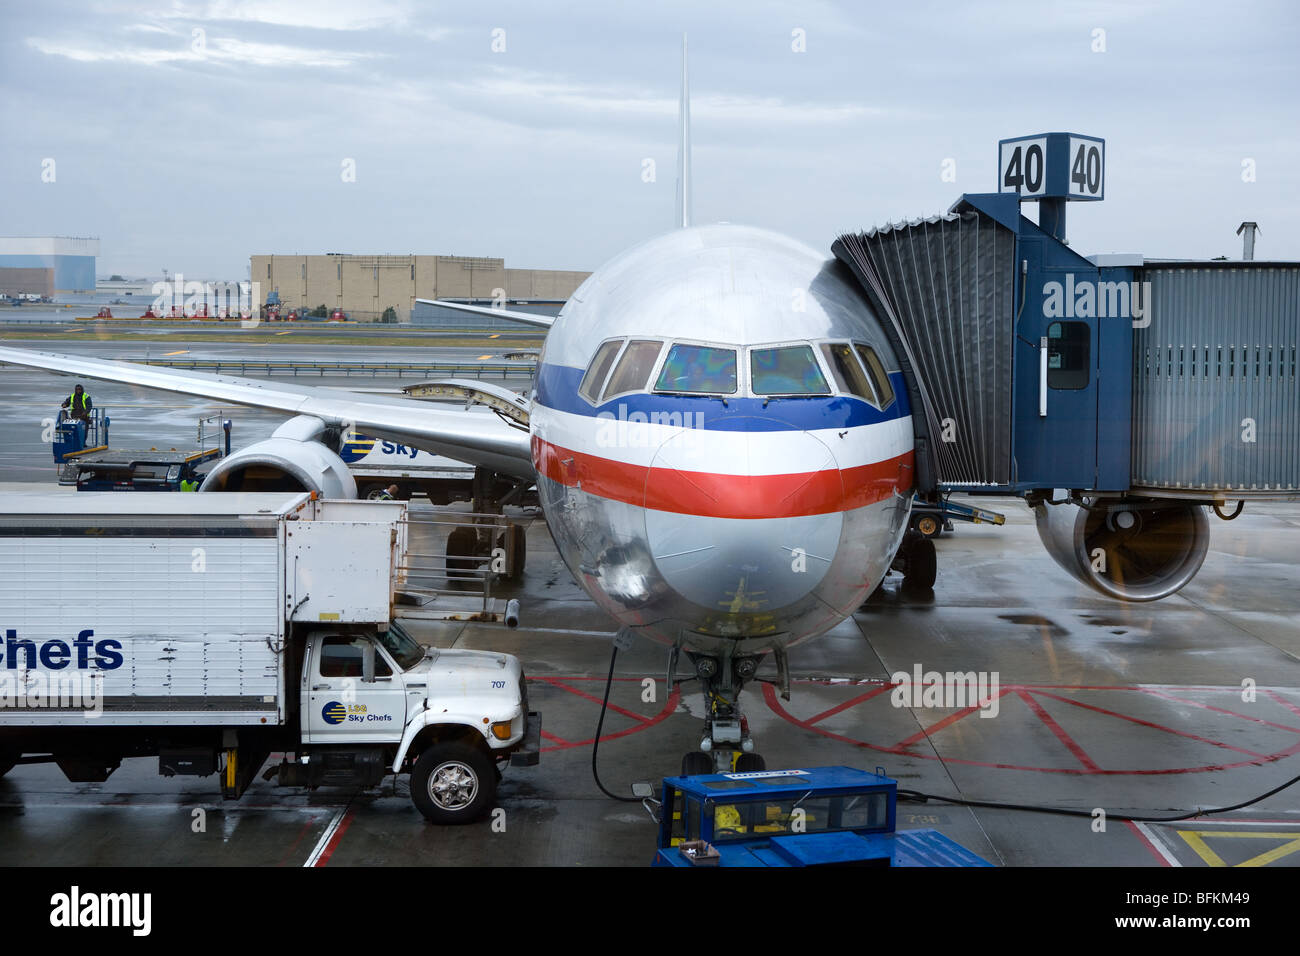 Passengers board a US Airways jet en route from JFK in New York to Mexico on the walkway as food trucks bring food. - Stock Image